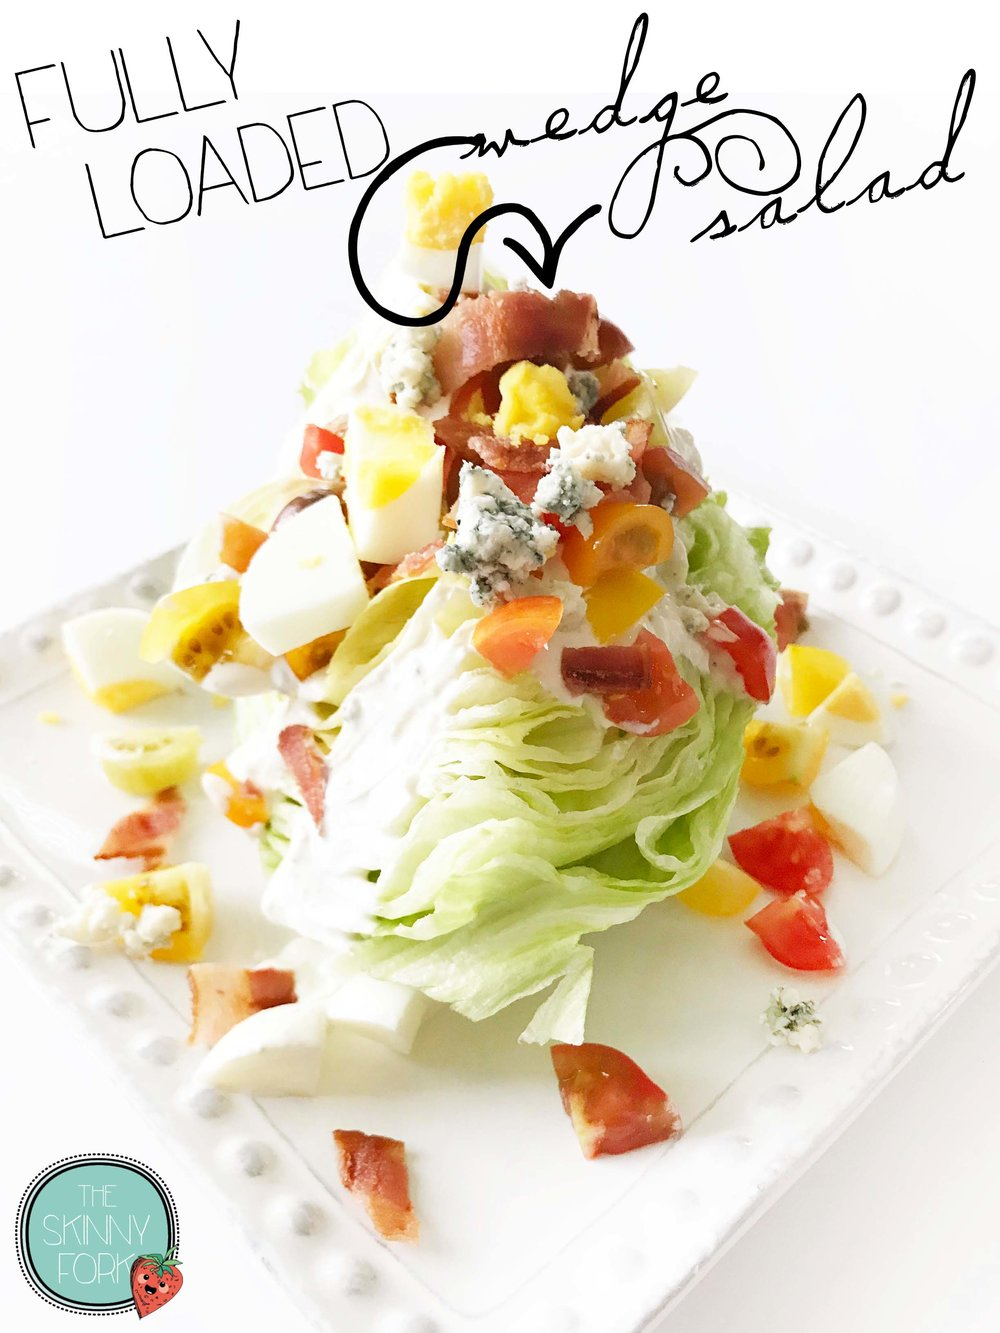 wedge-salad-pin.jpg